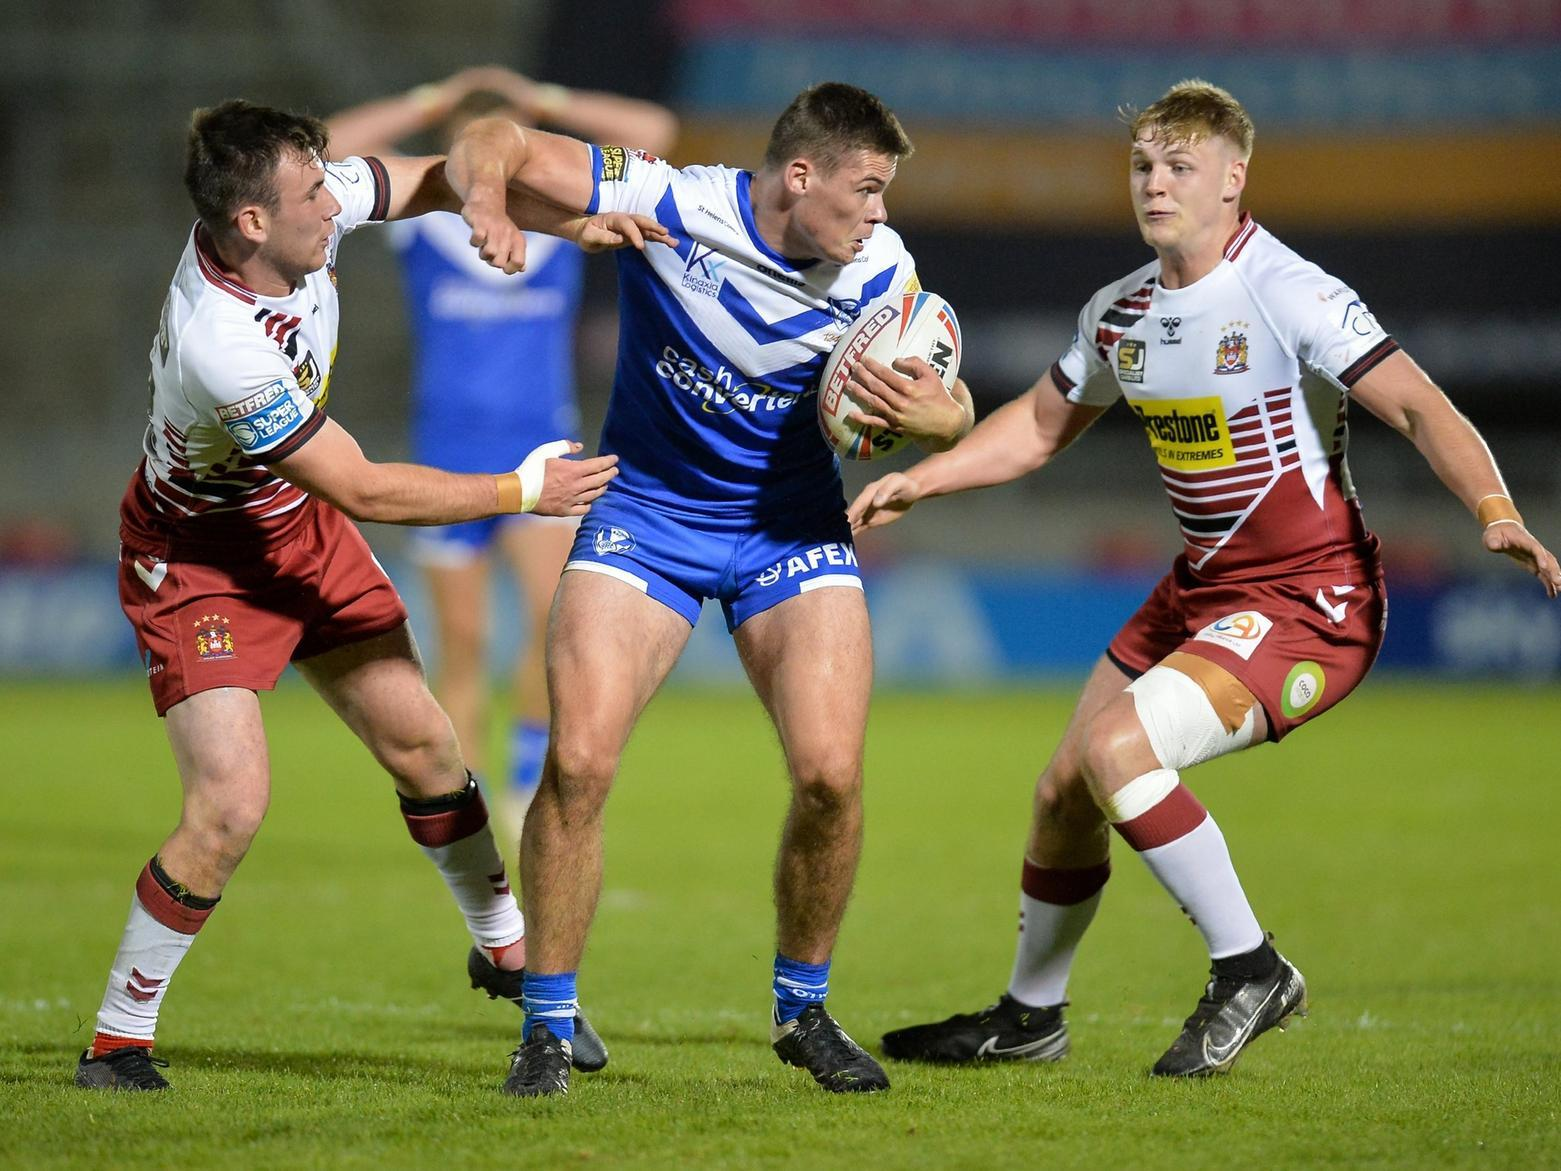 Wigan Warriors: The 18th Man - 'We have the capability to win, and any final put before us, but we're yet to fulfill the potential...'